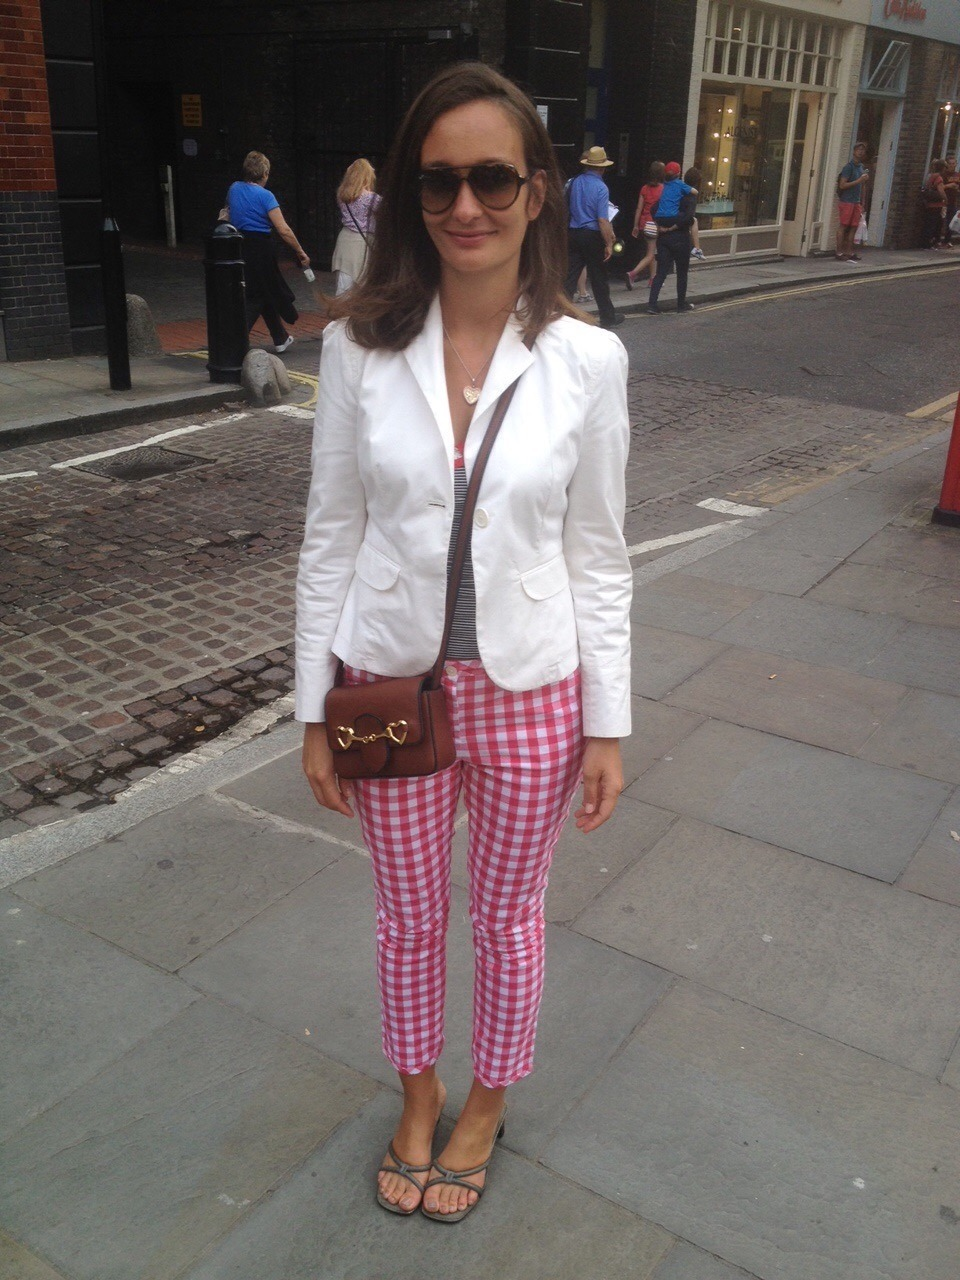 Vichy Gingham trousers by GANT and white blazer by GAP.